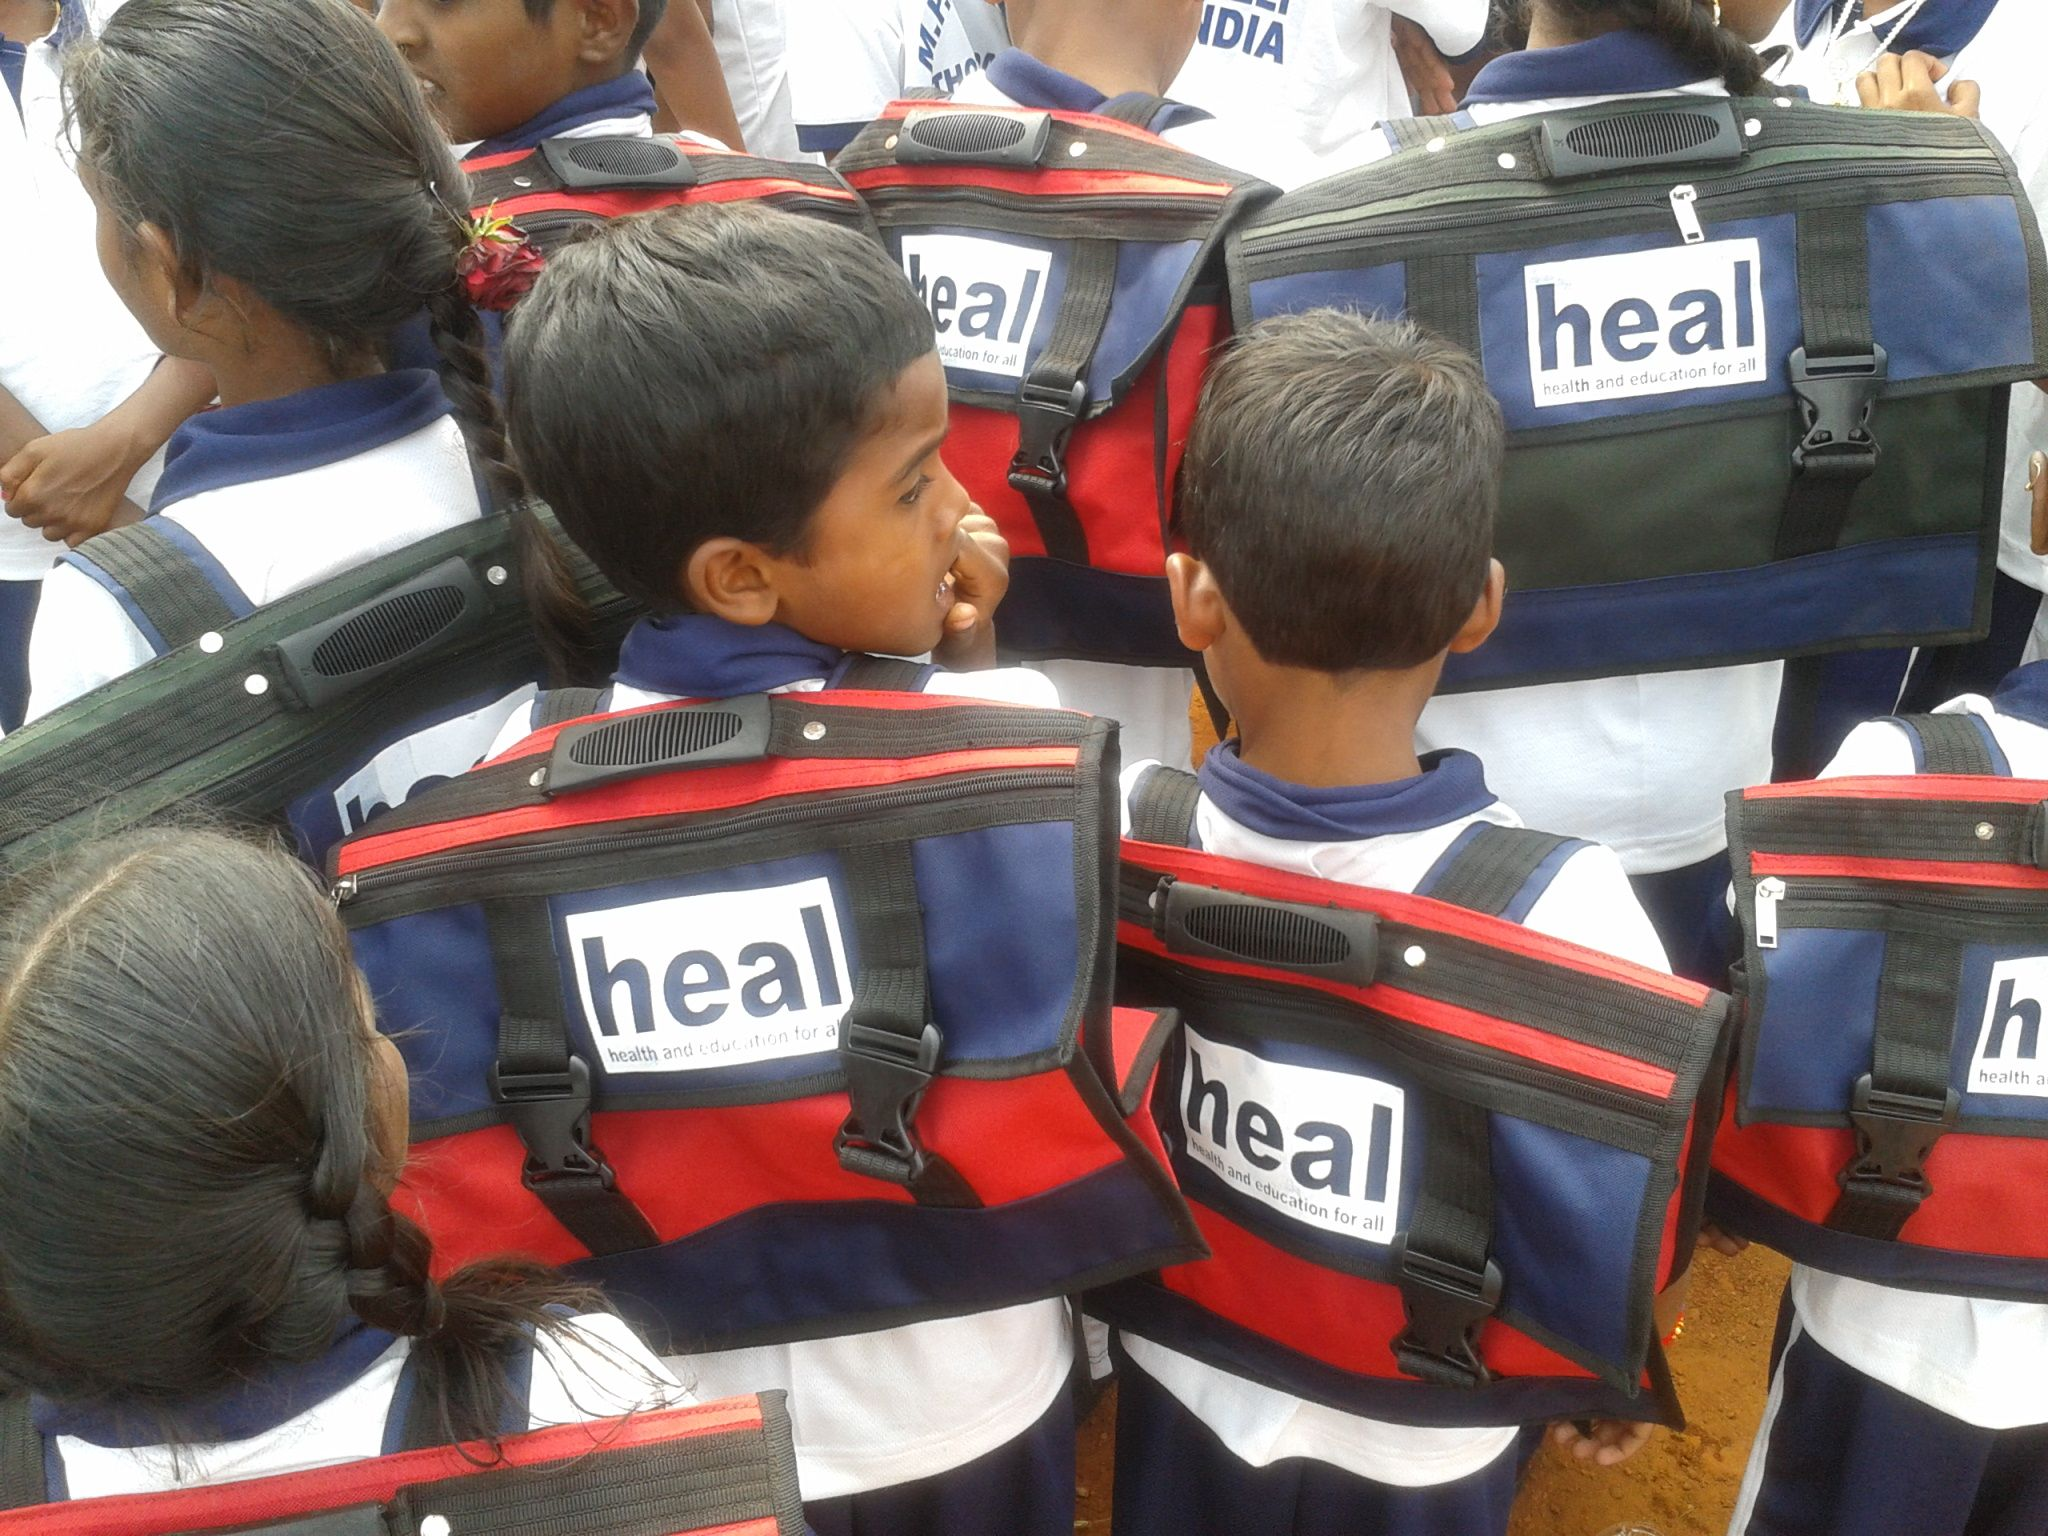 Heal initiatives such as free books bags and equipment